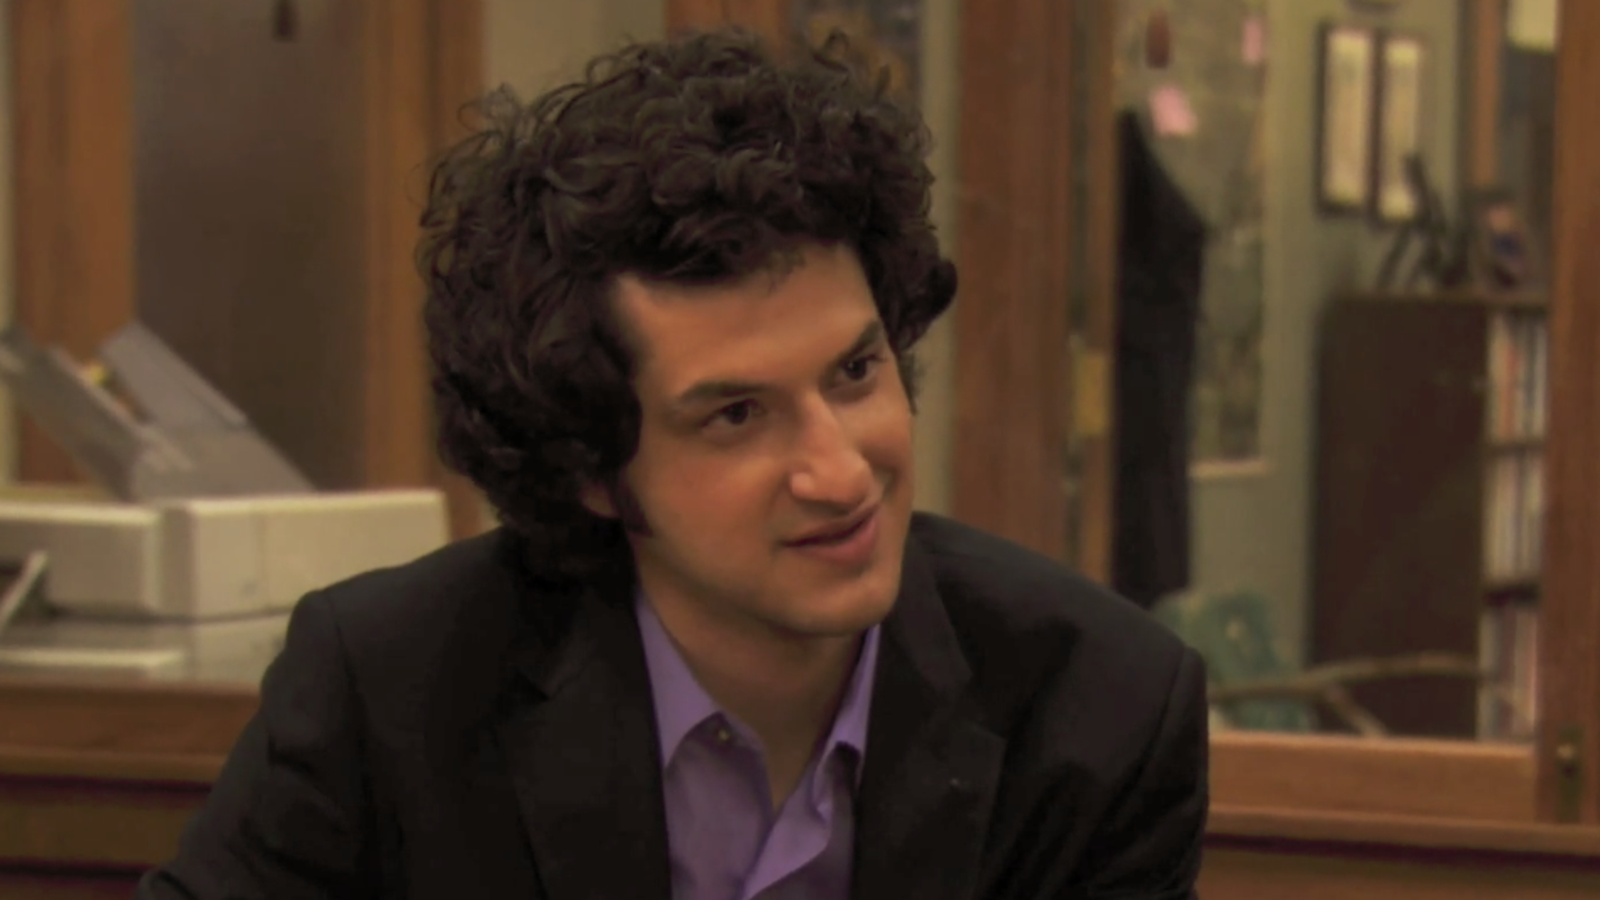 Oh, god: Parks & Rec's Jean-Ralphio exists in The Good Place